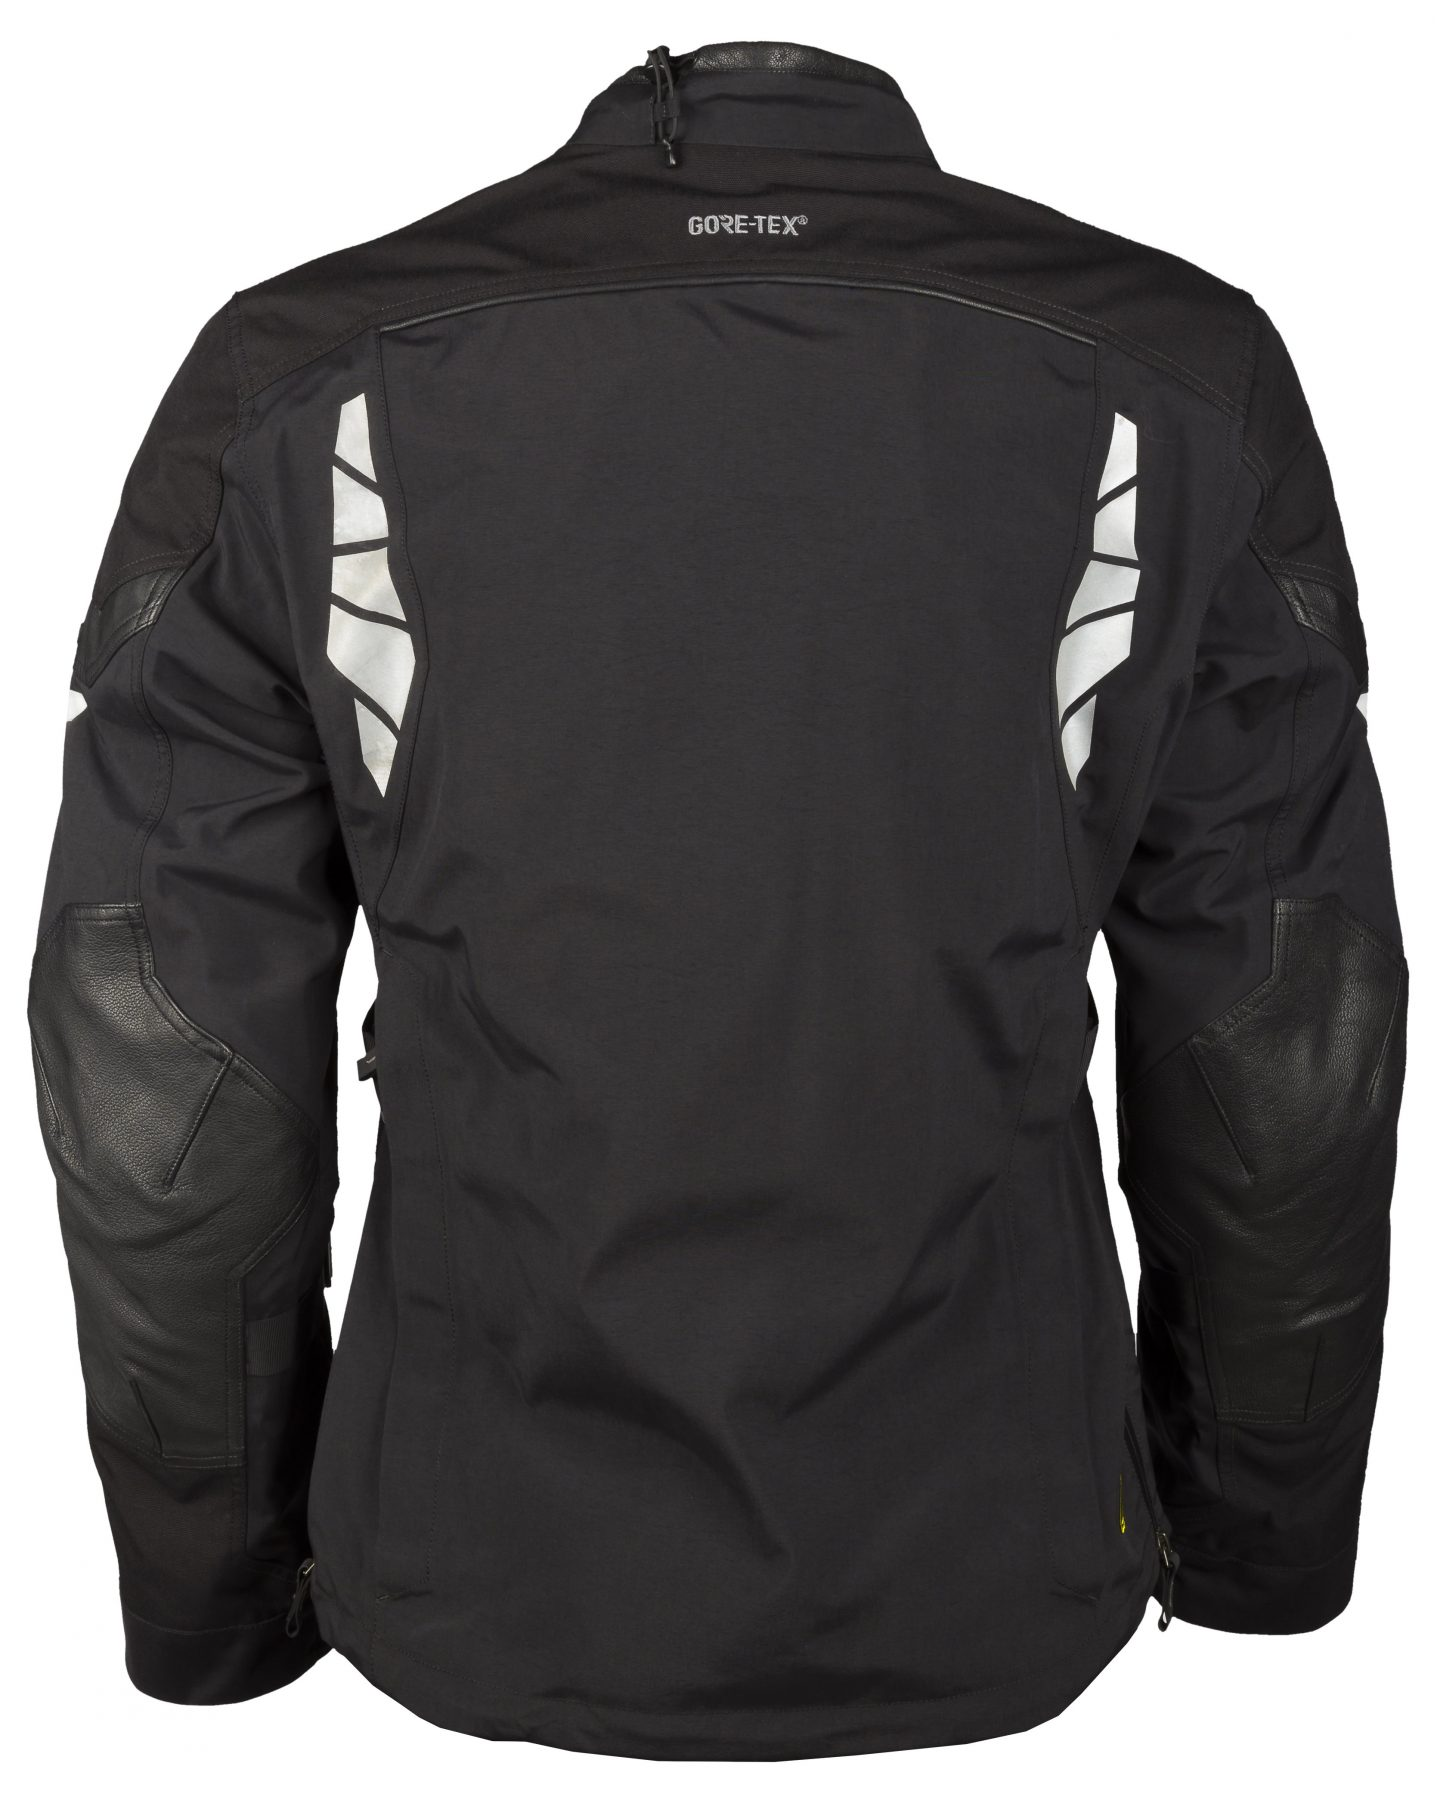 Latitude Jacket_5146-003_Black_03